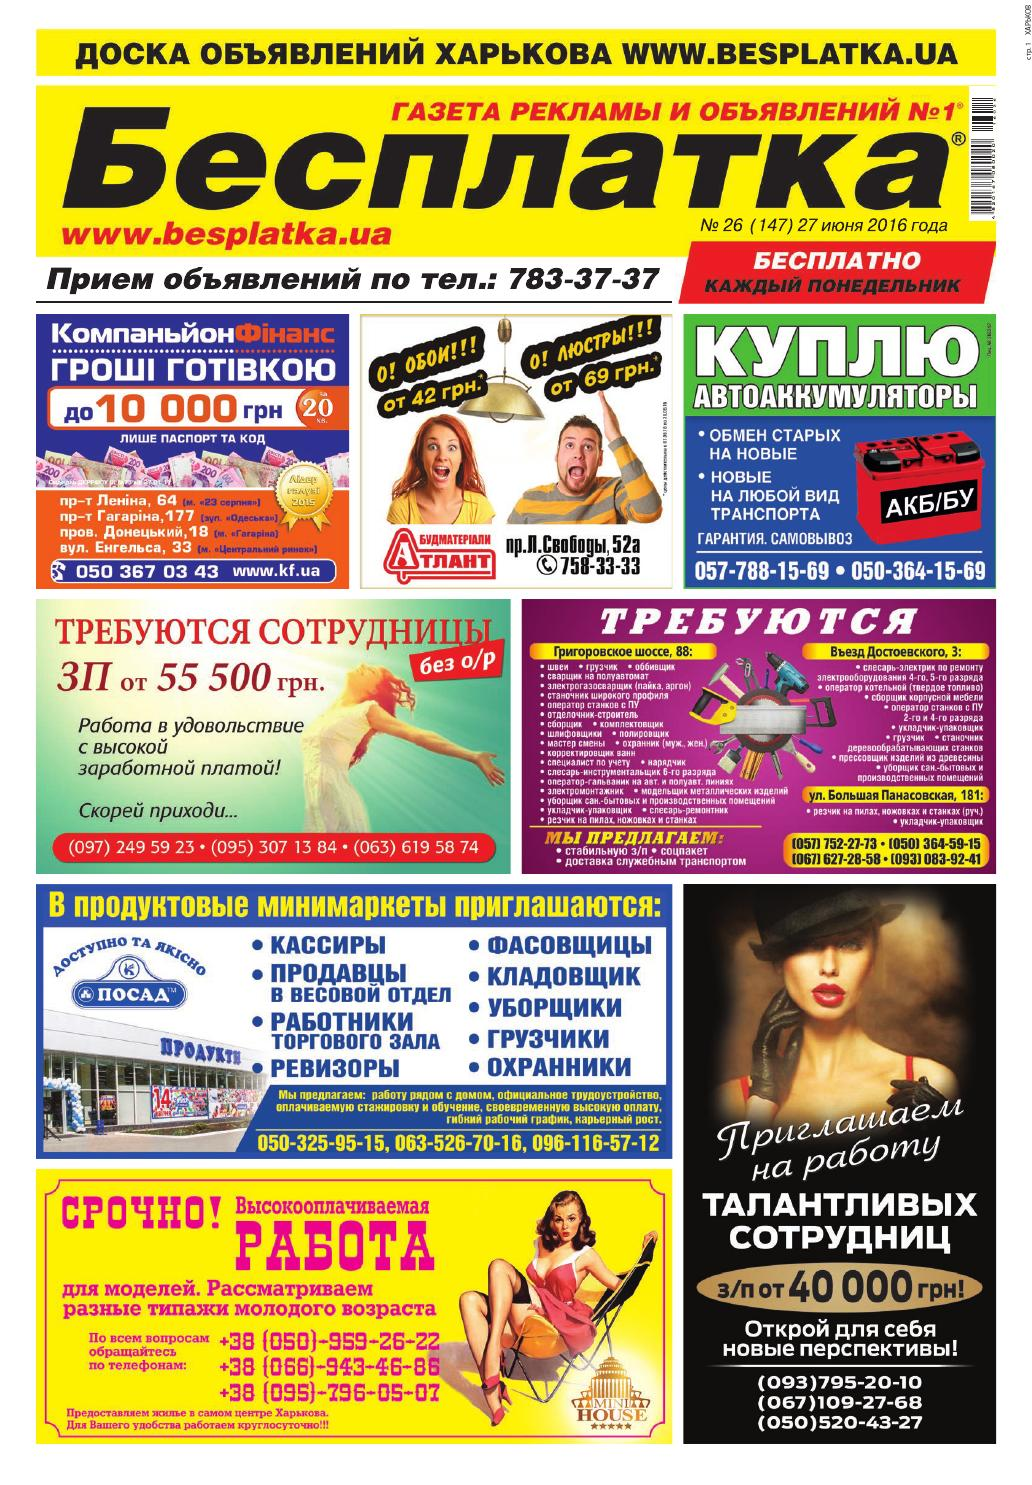 Besplatka  26 Харьков by besplatka ukraine - issuu 00bdd538c1a3a